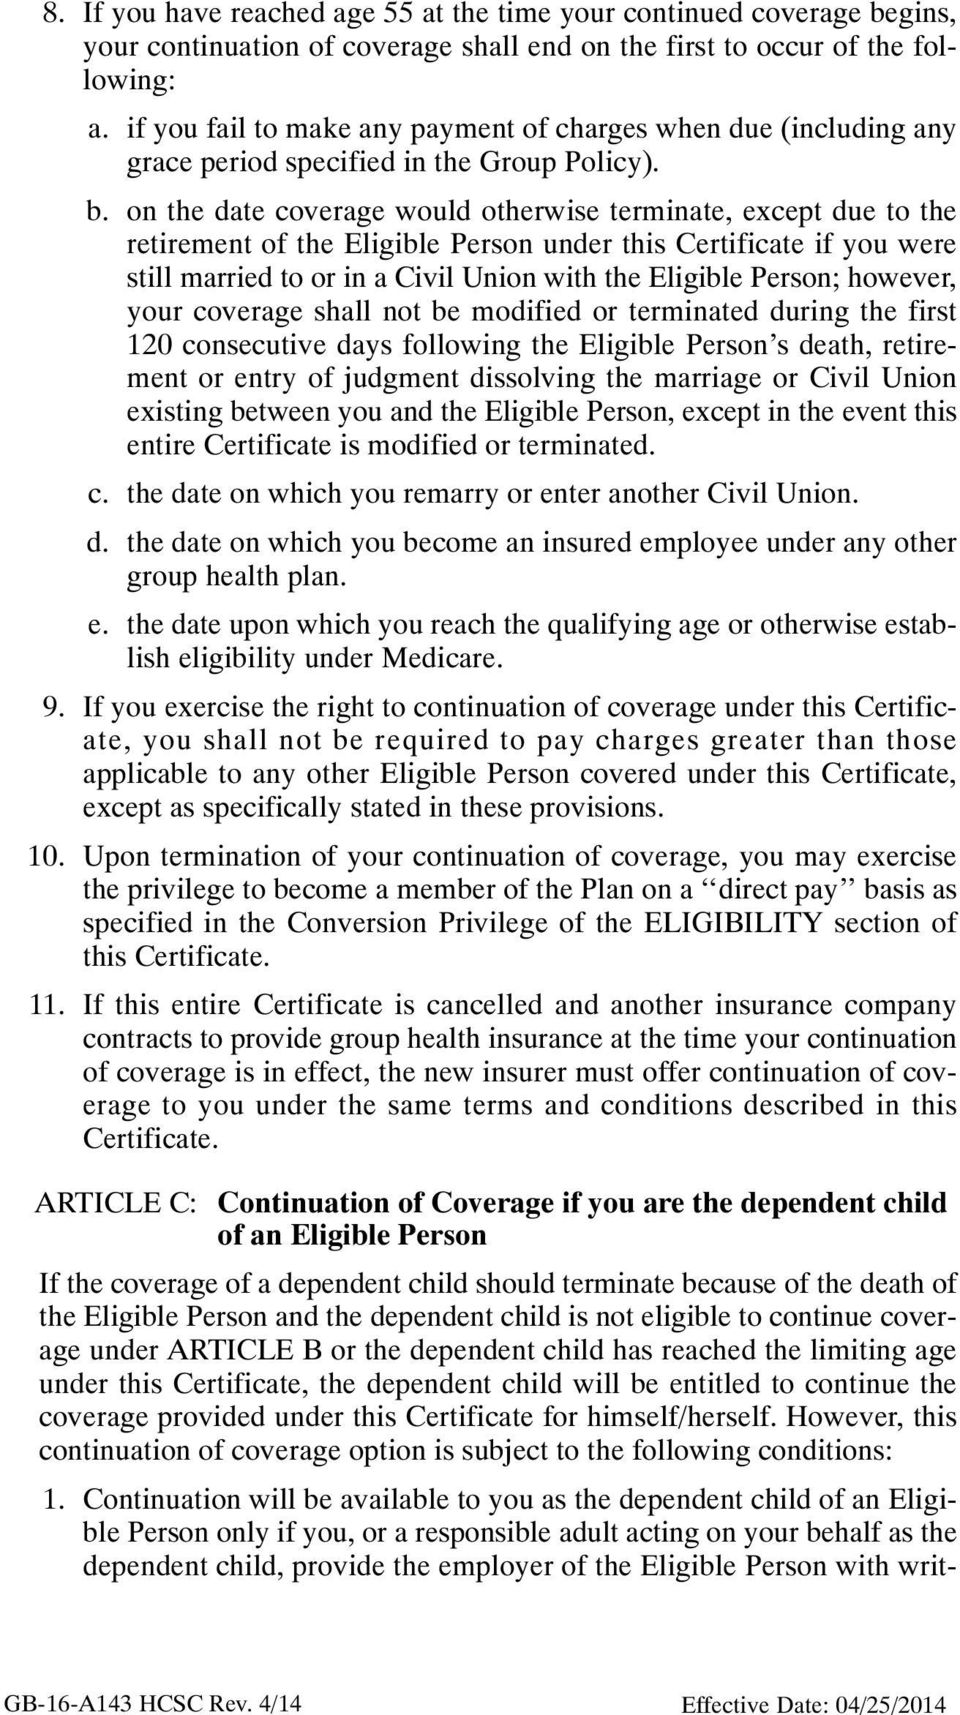 on the date coverage would otherwise terminate, except due to the retirement of the Eligible Person under this Certificate if you were still married to or in a Civil Union with the Eligible Person;